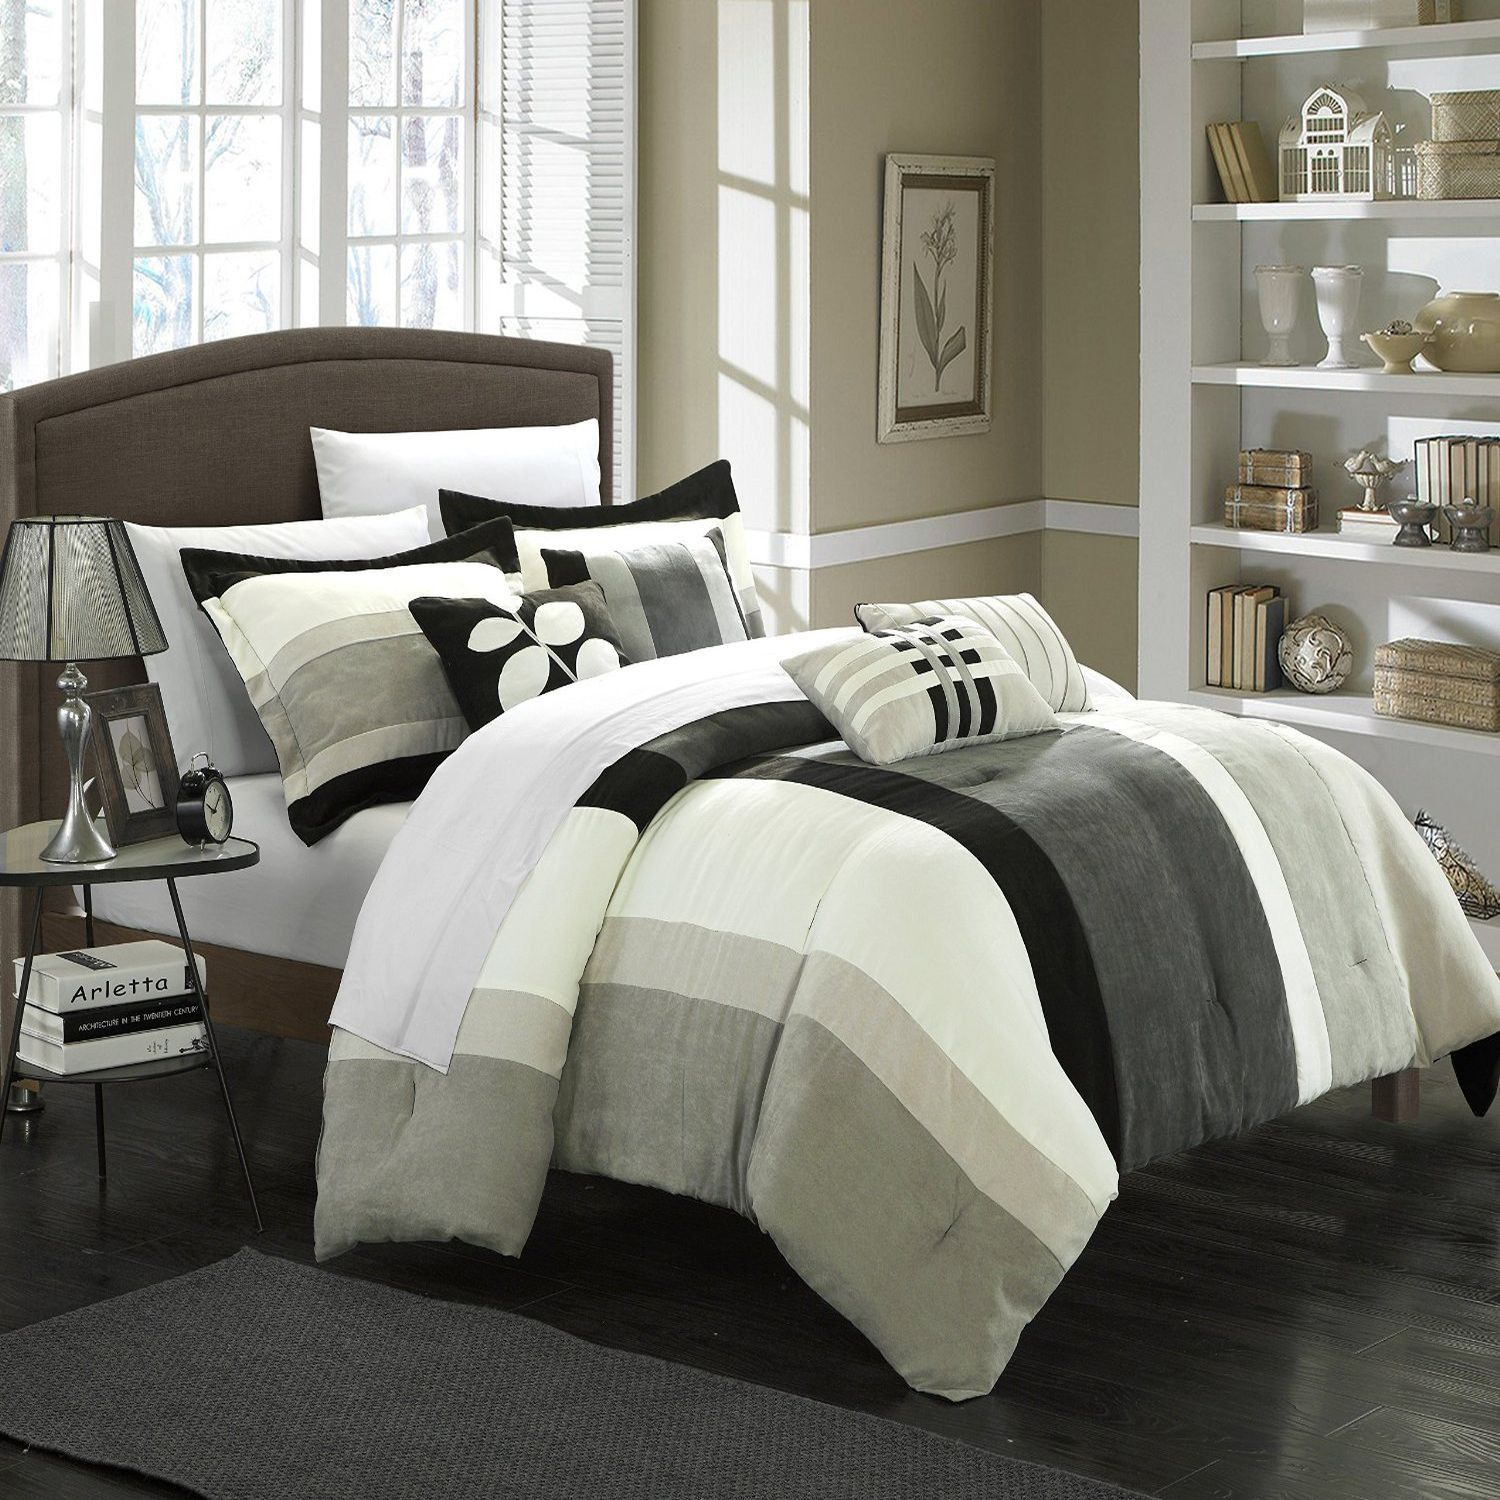 Highland Black Grey Sage f White King 7 Piece forter Bed In A